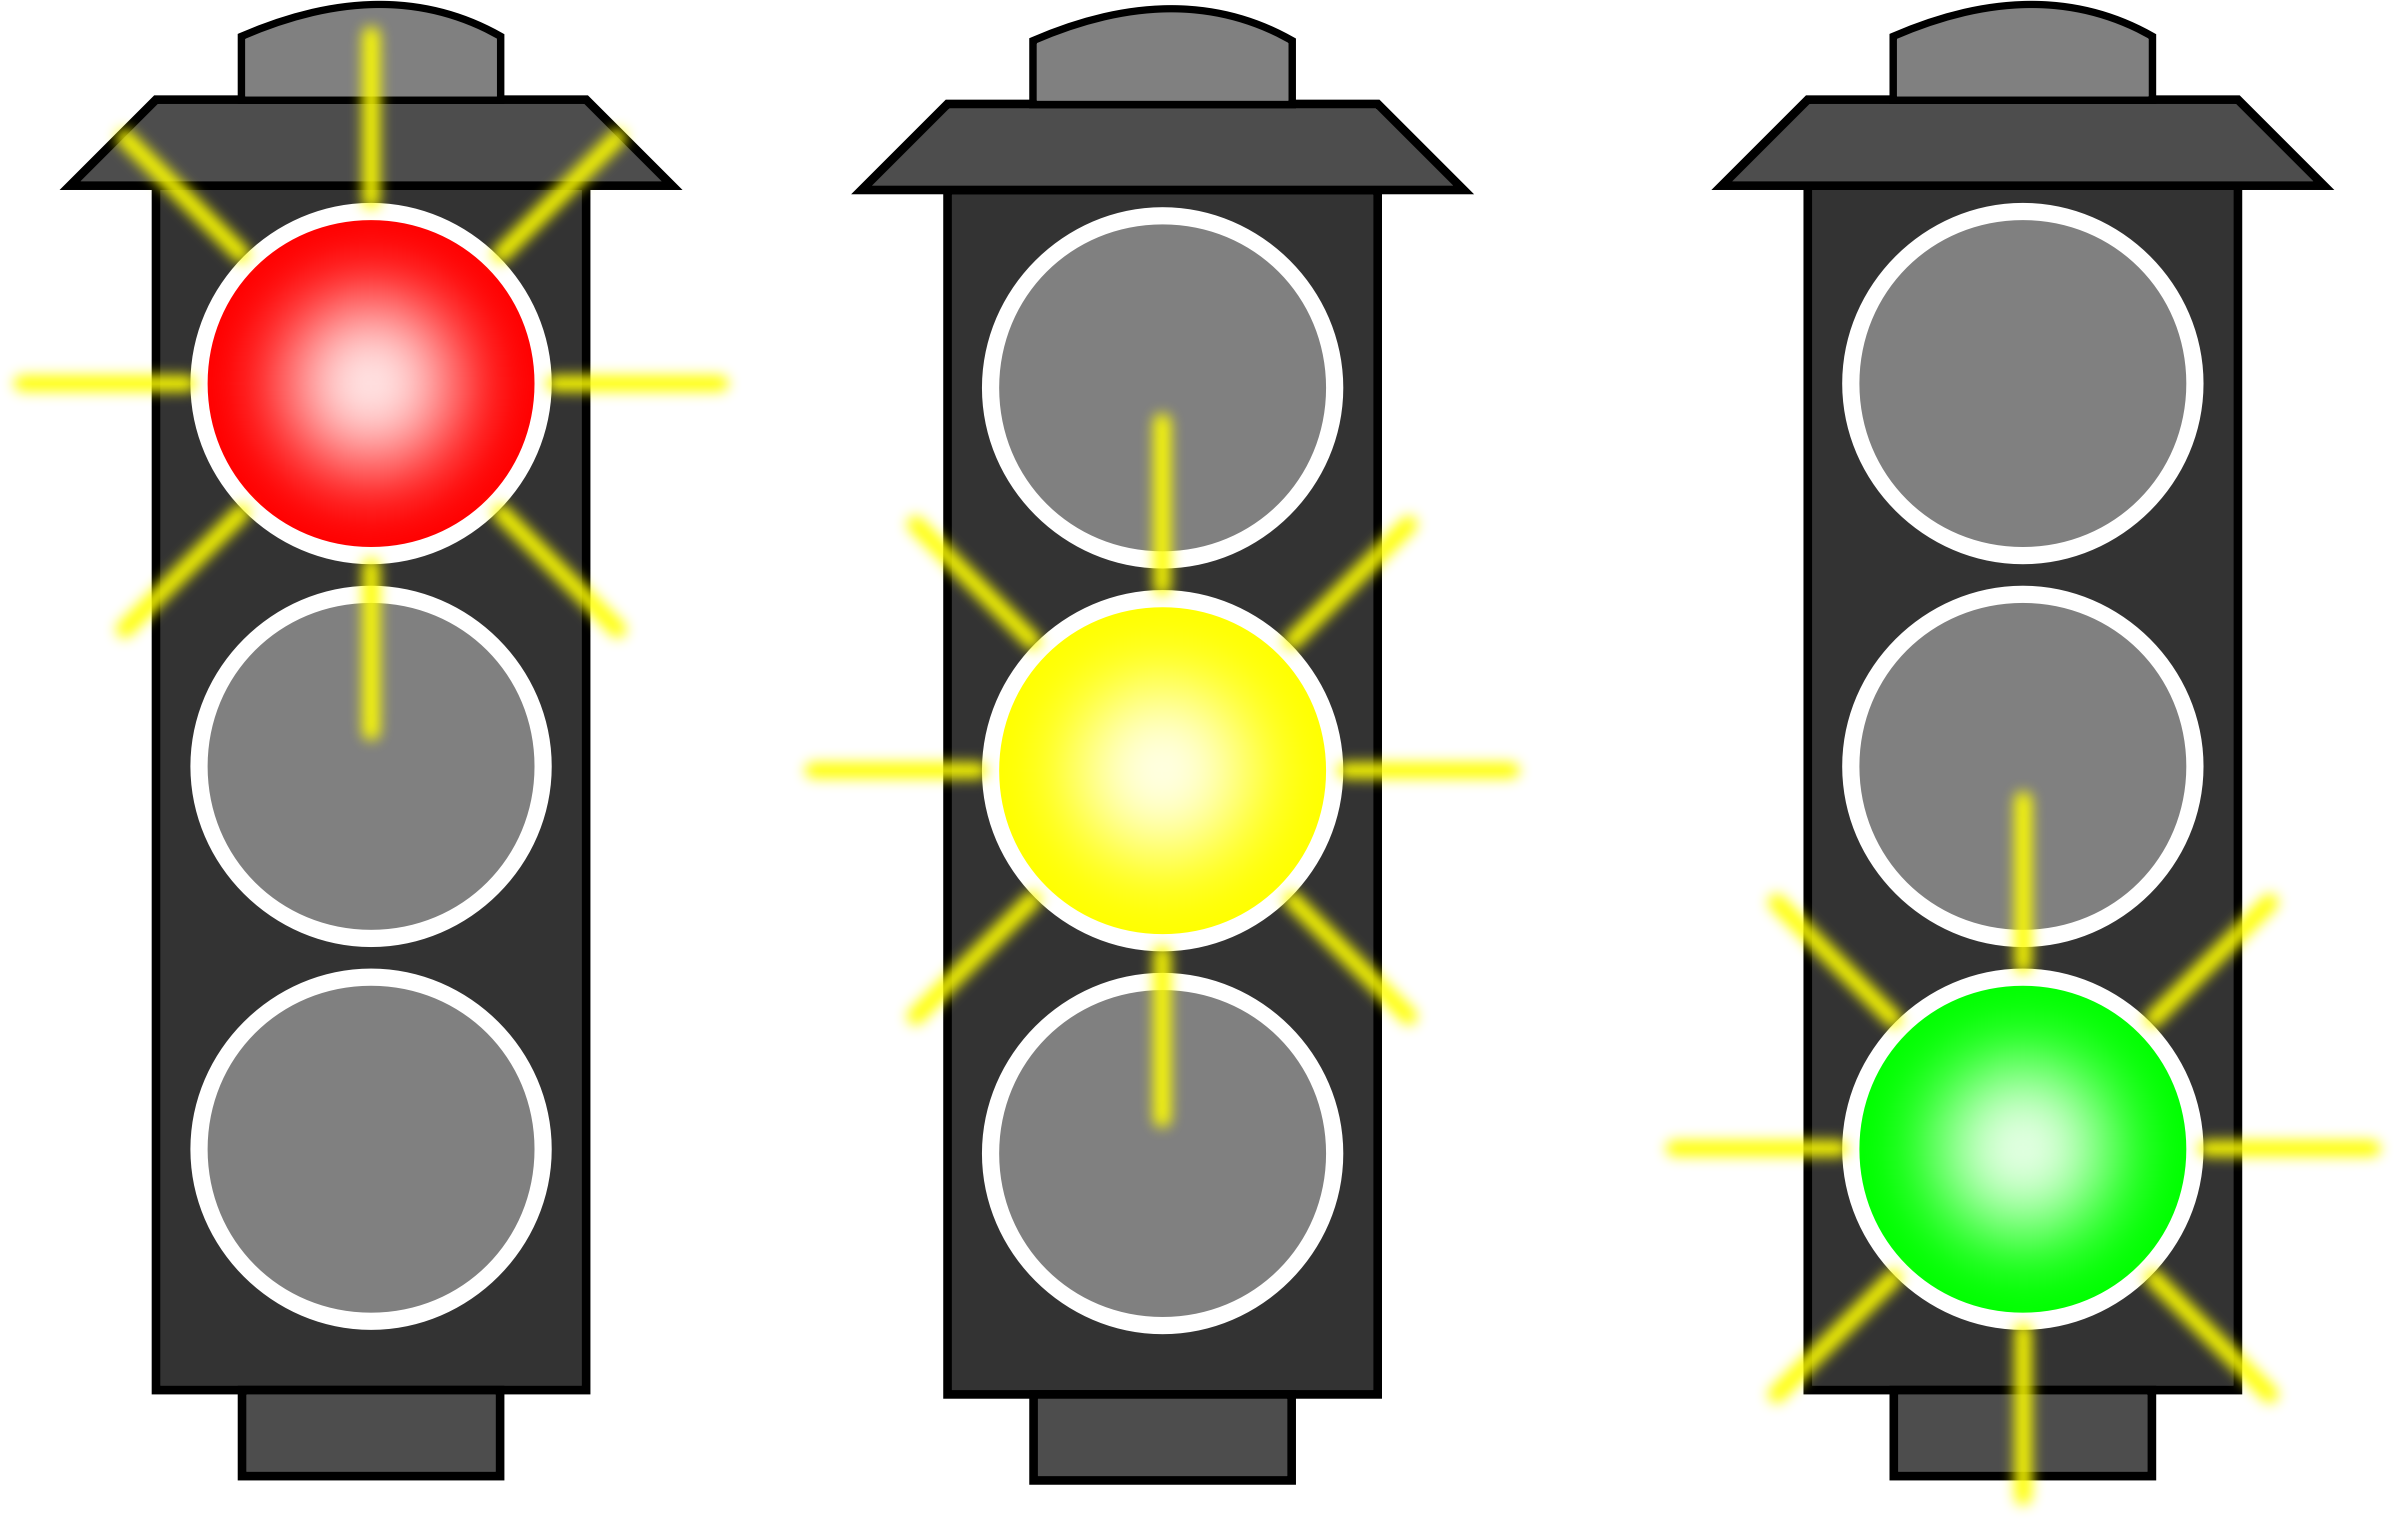 traffic light, traffic symbol icon transparent traffic symbol images vector icons and png backgrounds #30585